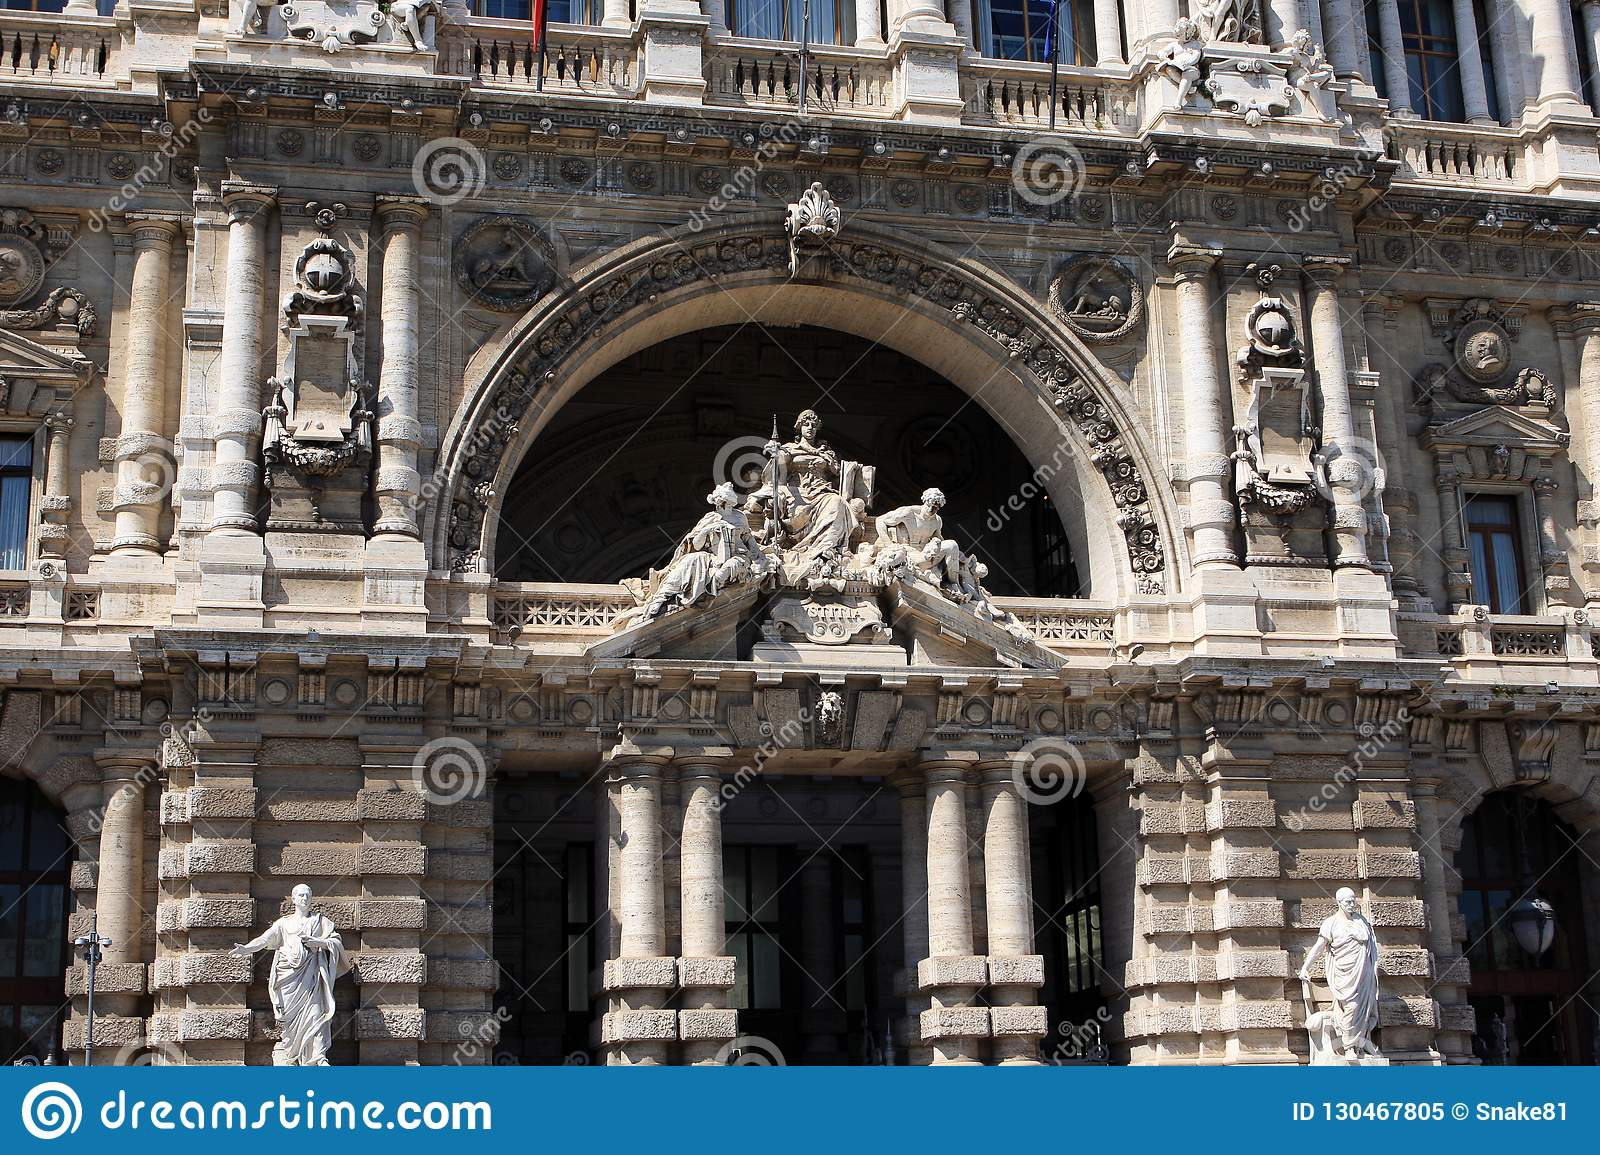 The Palace of Justice, Rome, Italy